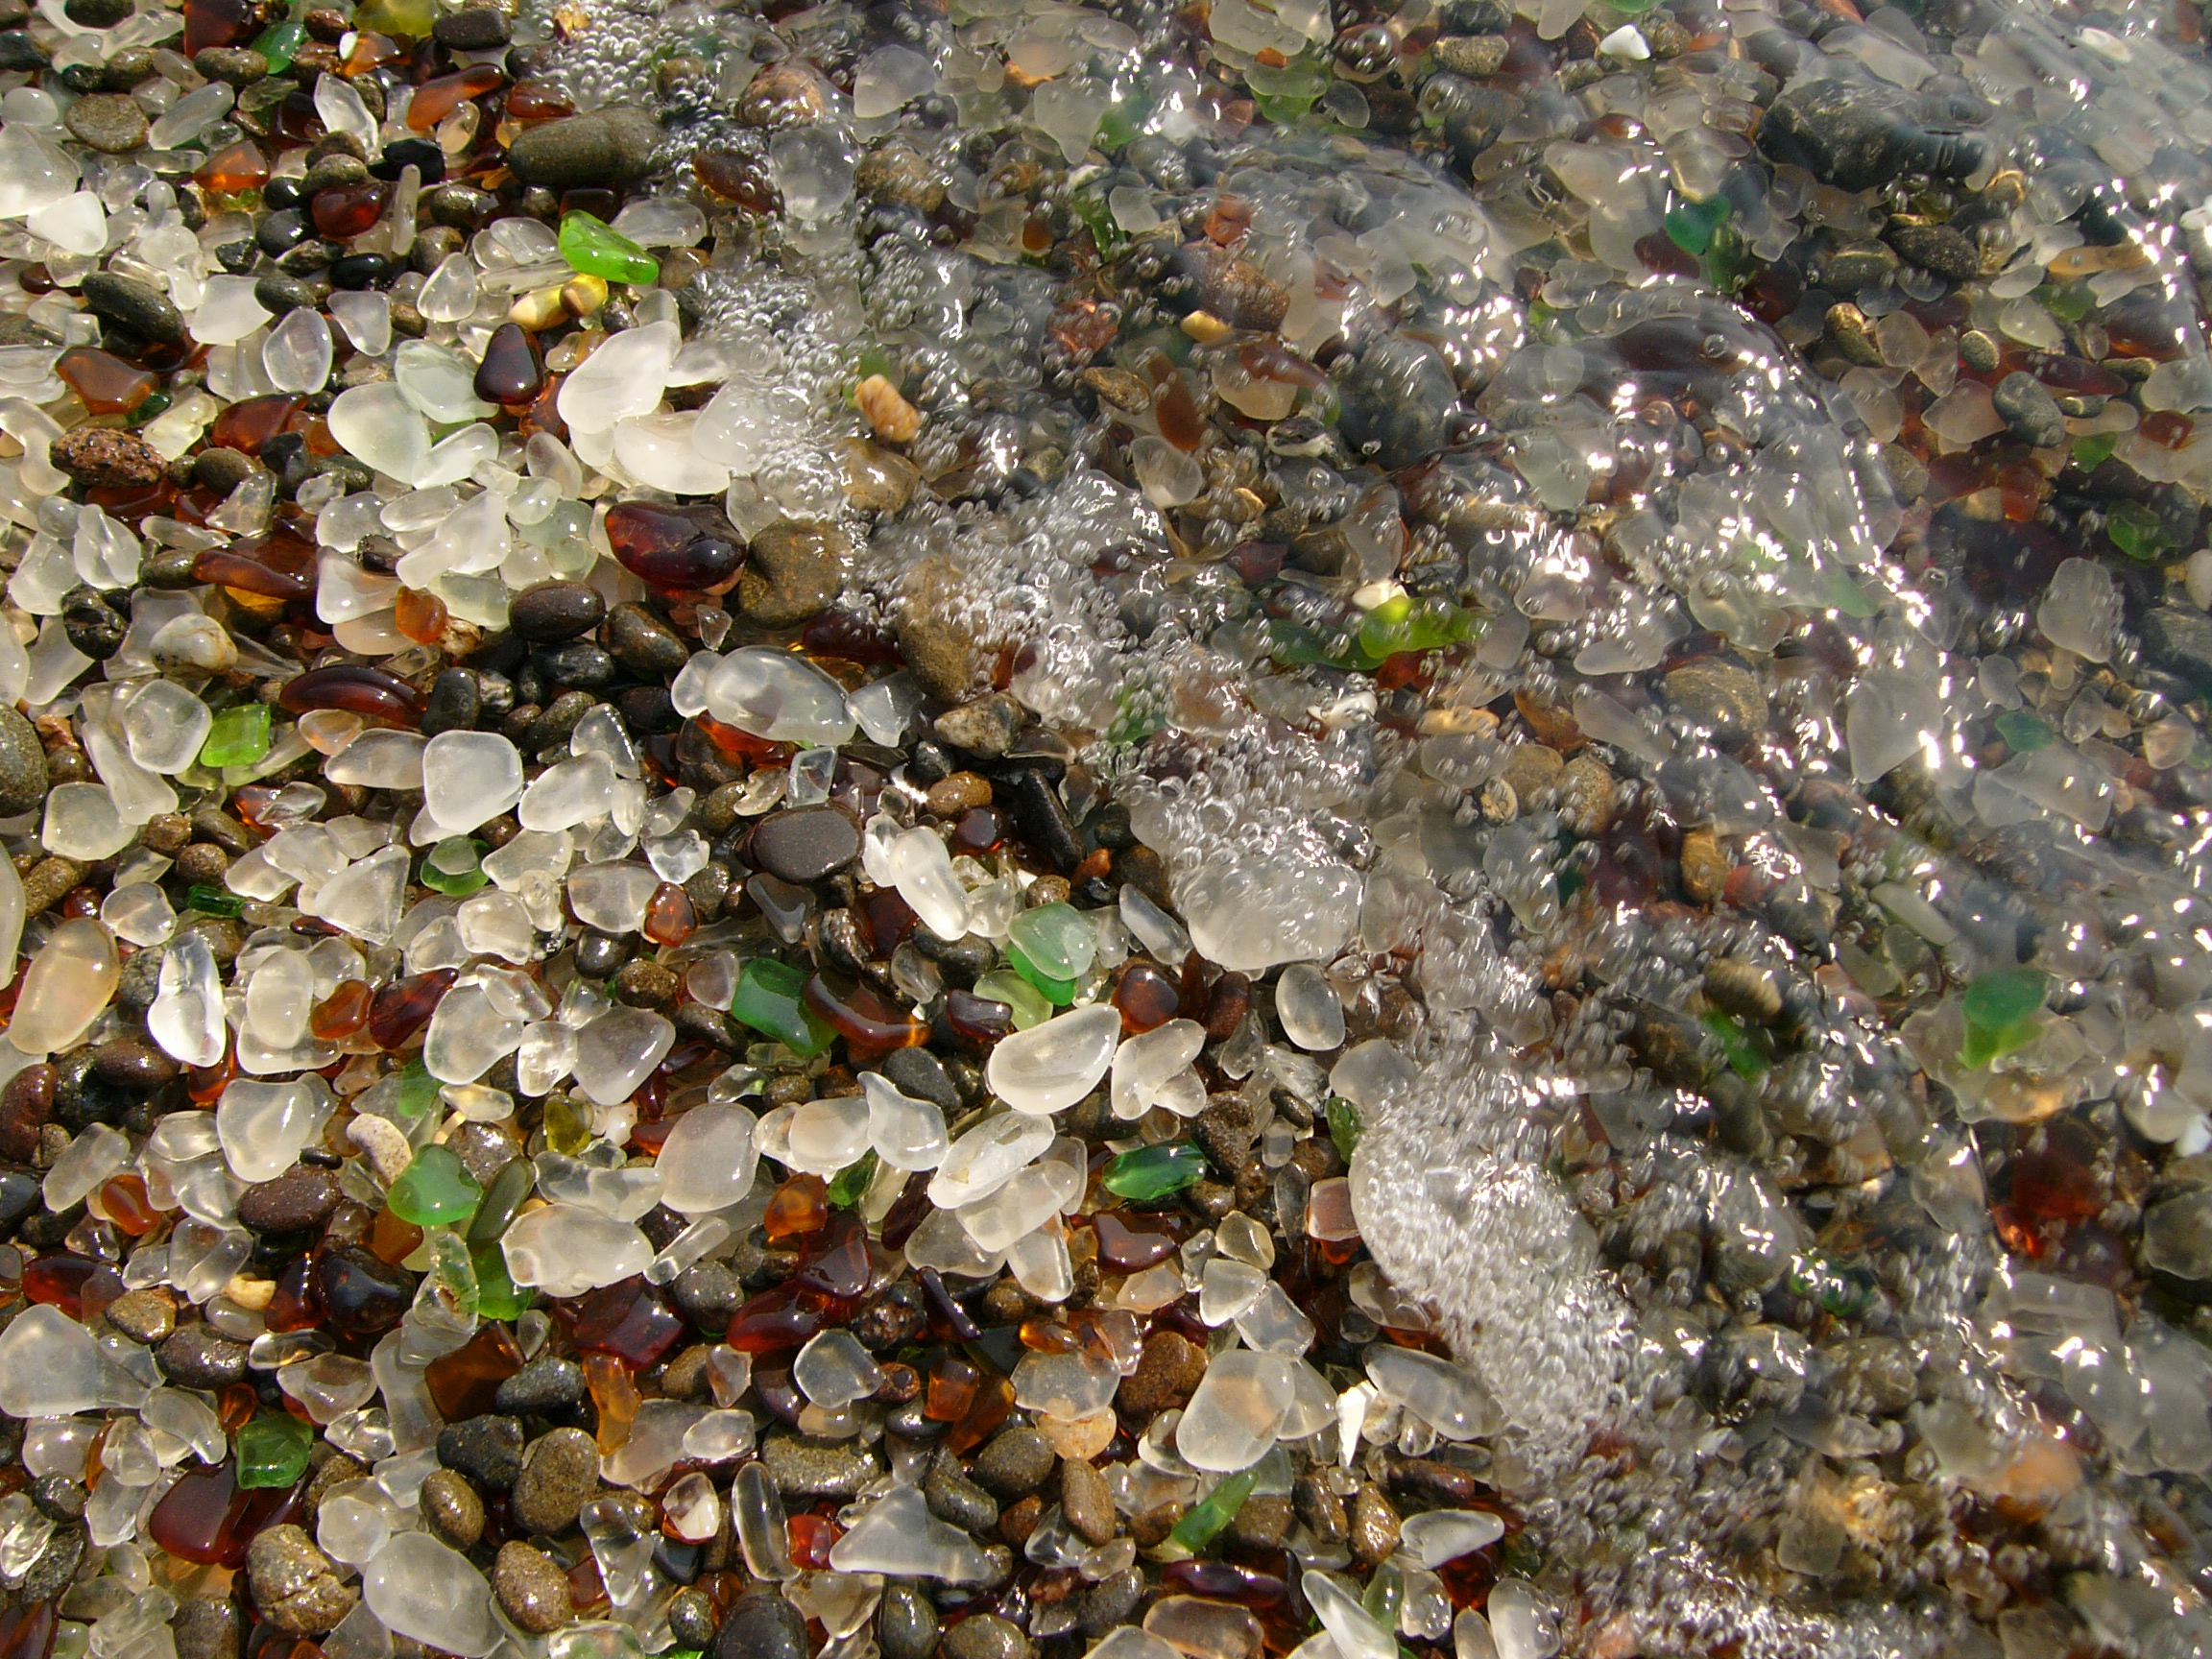 File:Glass Beach Fort Bragg 2.jpg - Wikipedia, the free encyclopedia